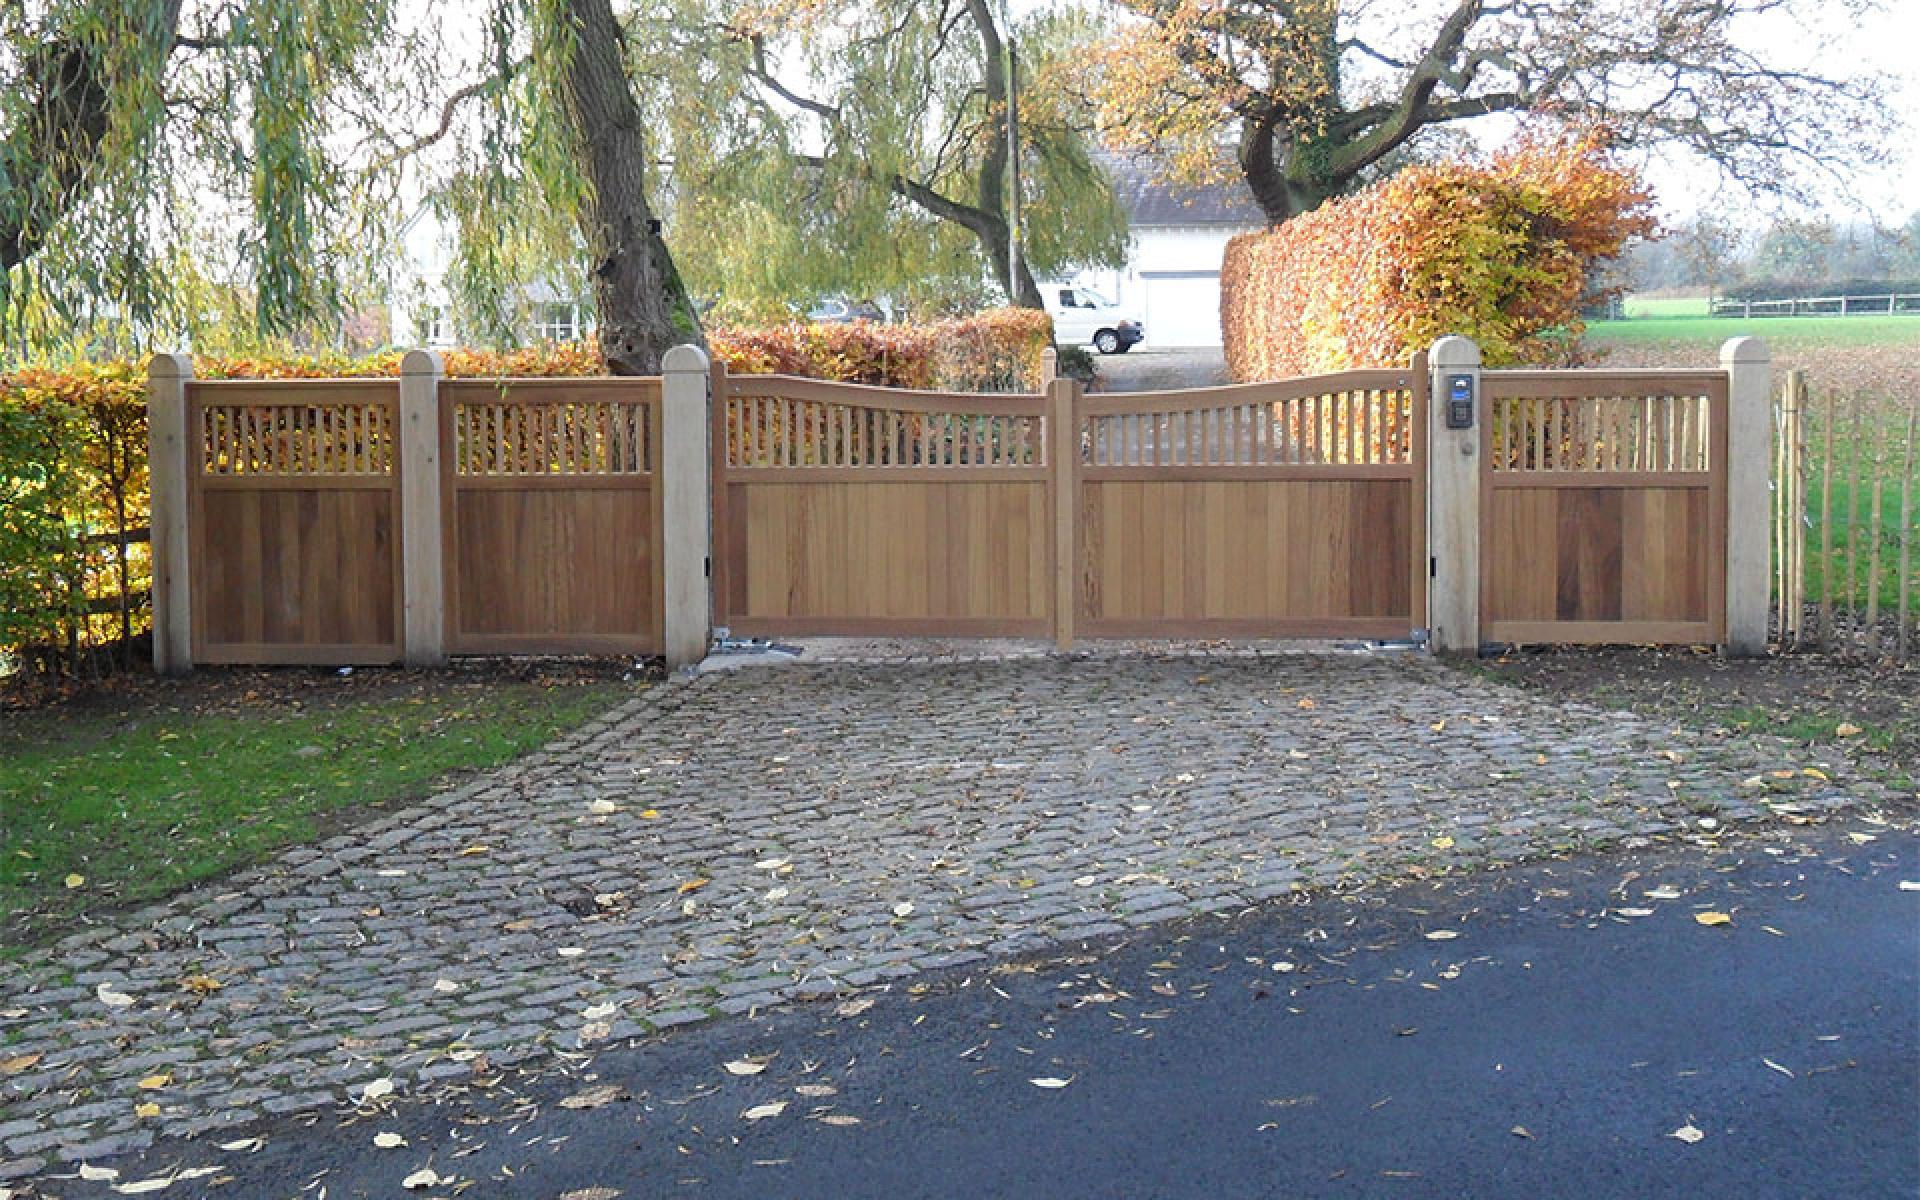 Alderley Edge & pedestrian wooden gate (Courtesy of Automation Gates)